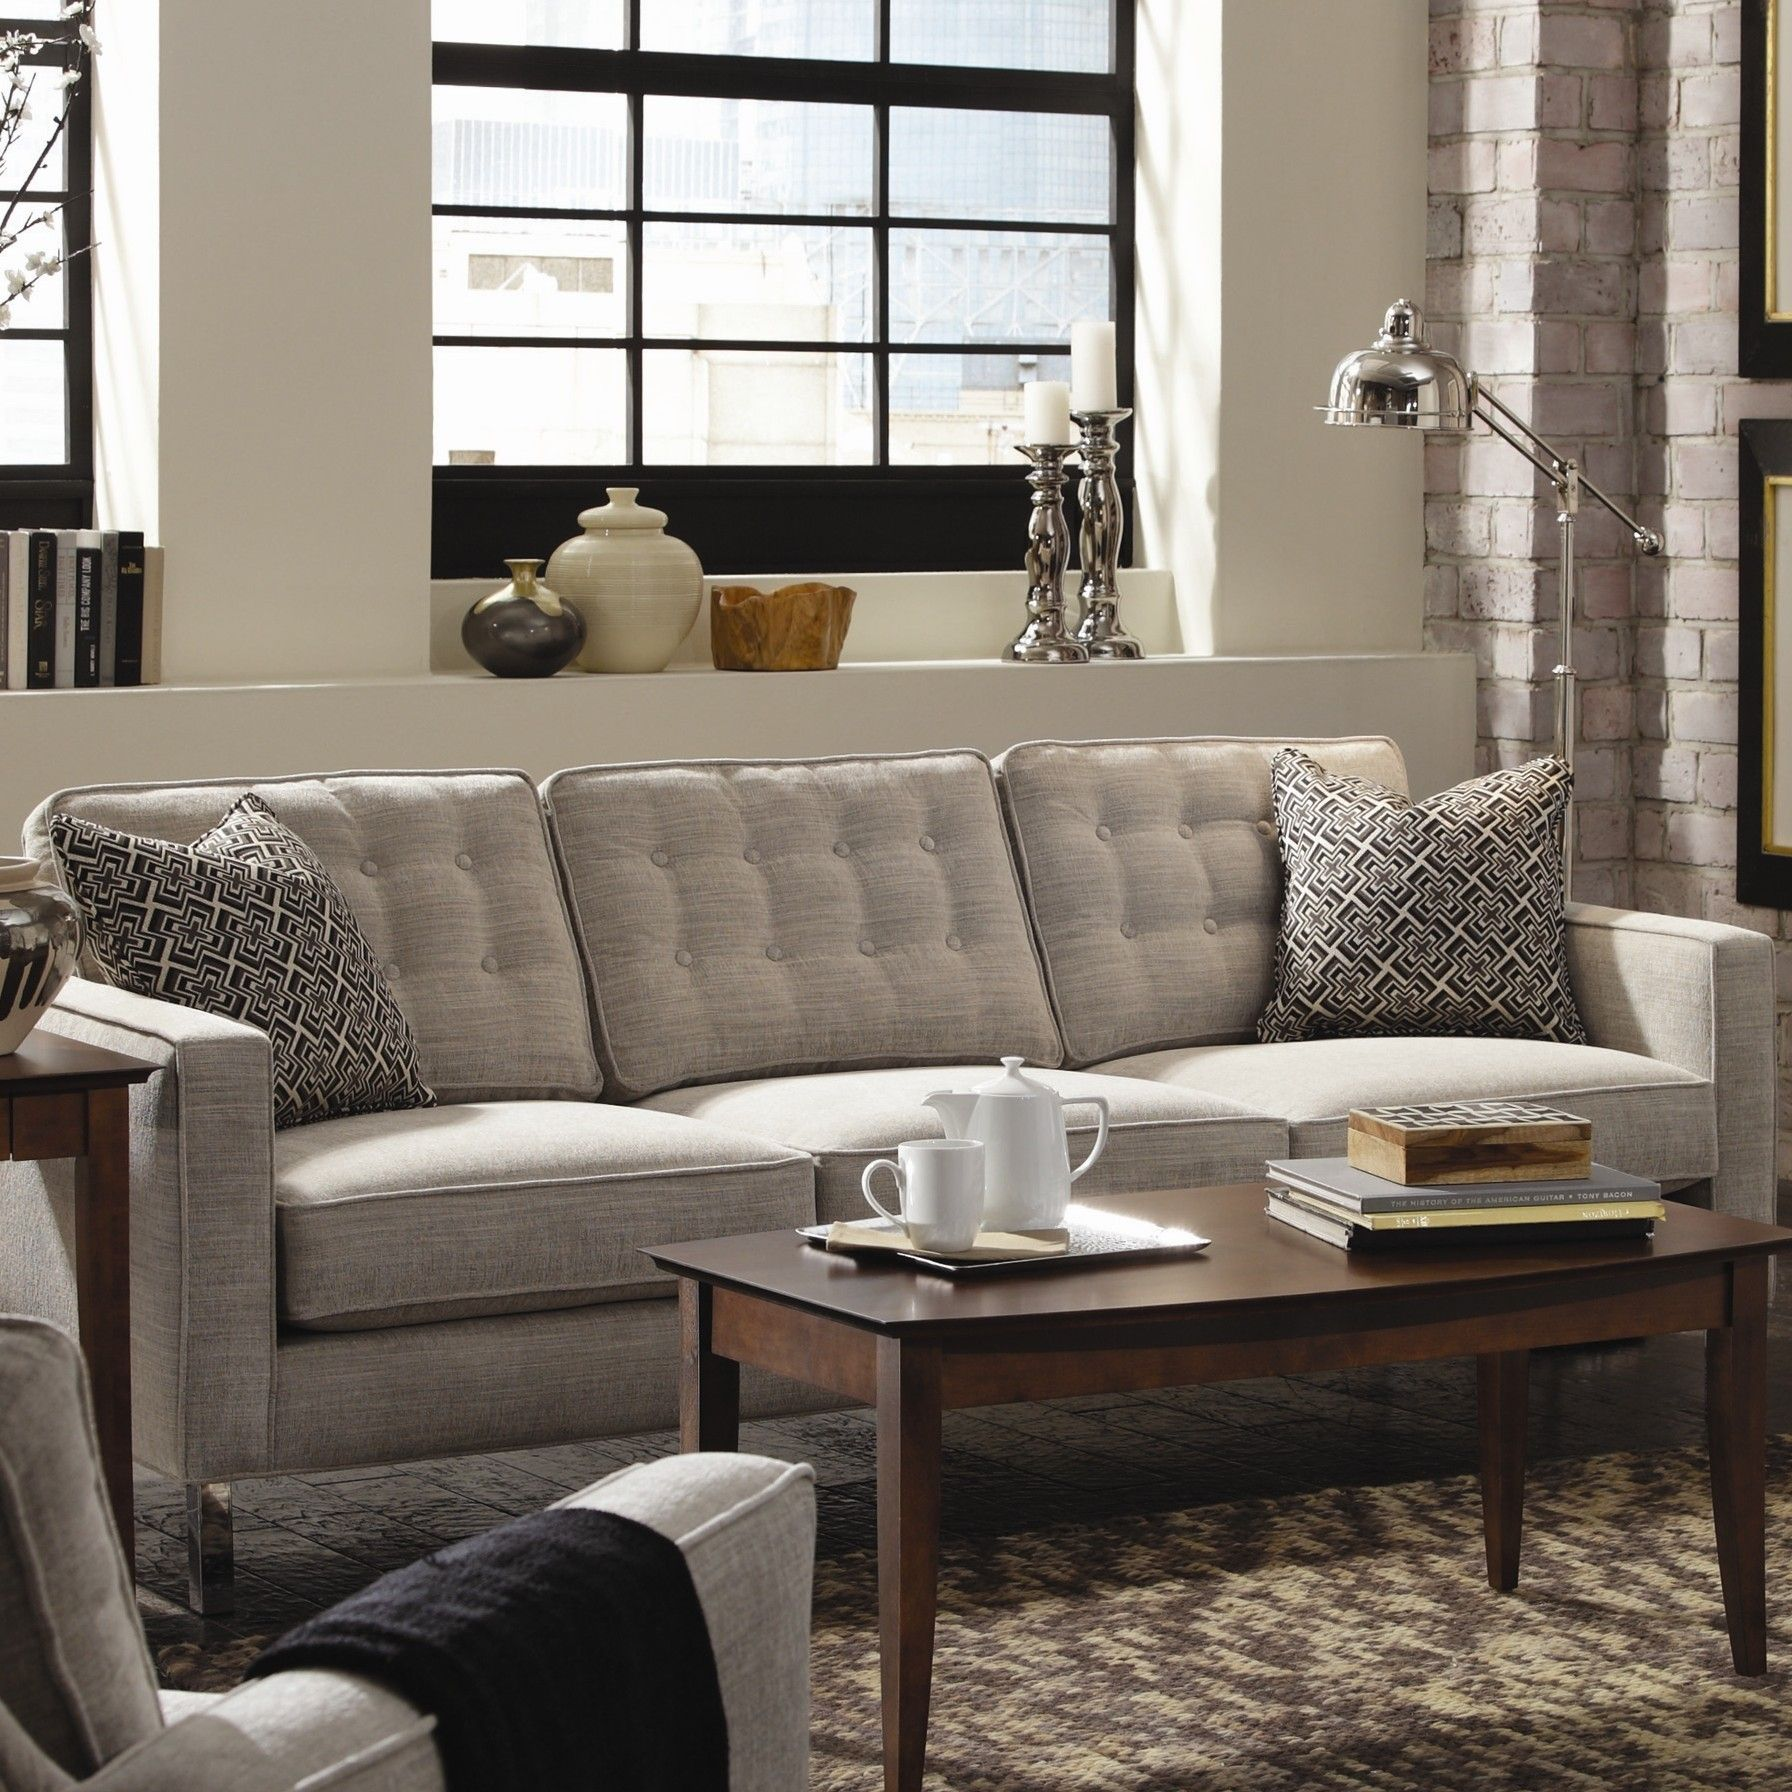 Rowe Furniture Abbott Sofa & Reviews Wayfair